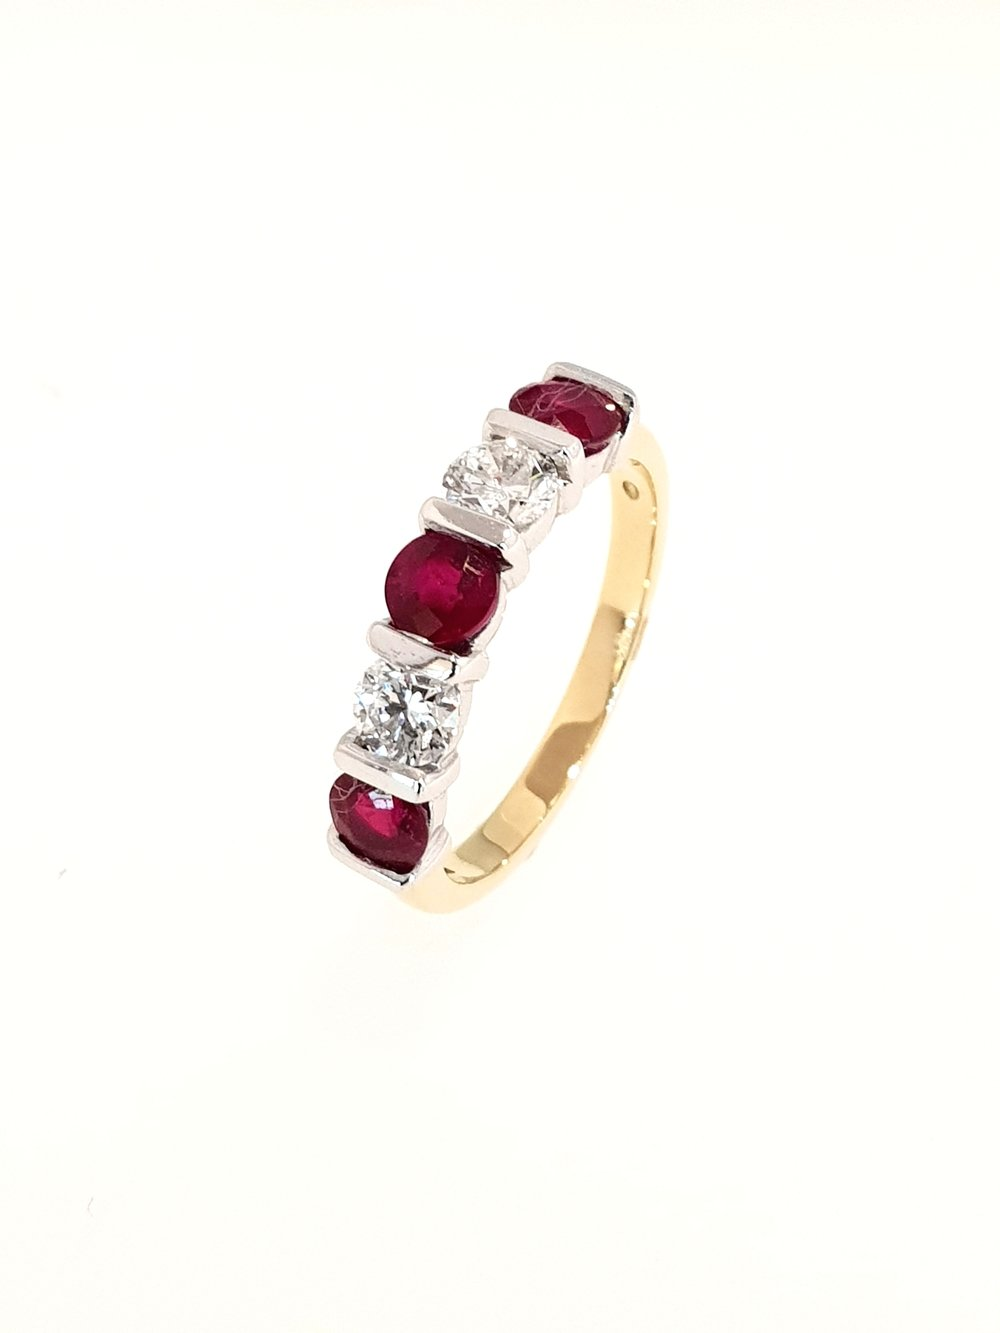 18ct Yellow Gold Ruby(1.15ct) & Diamond Ring  Diamond: .51ct, G, Si1  Stock Code: N8981  £3650